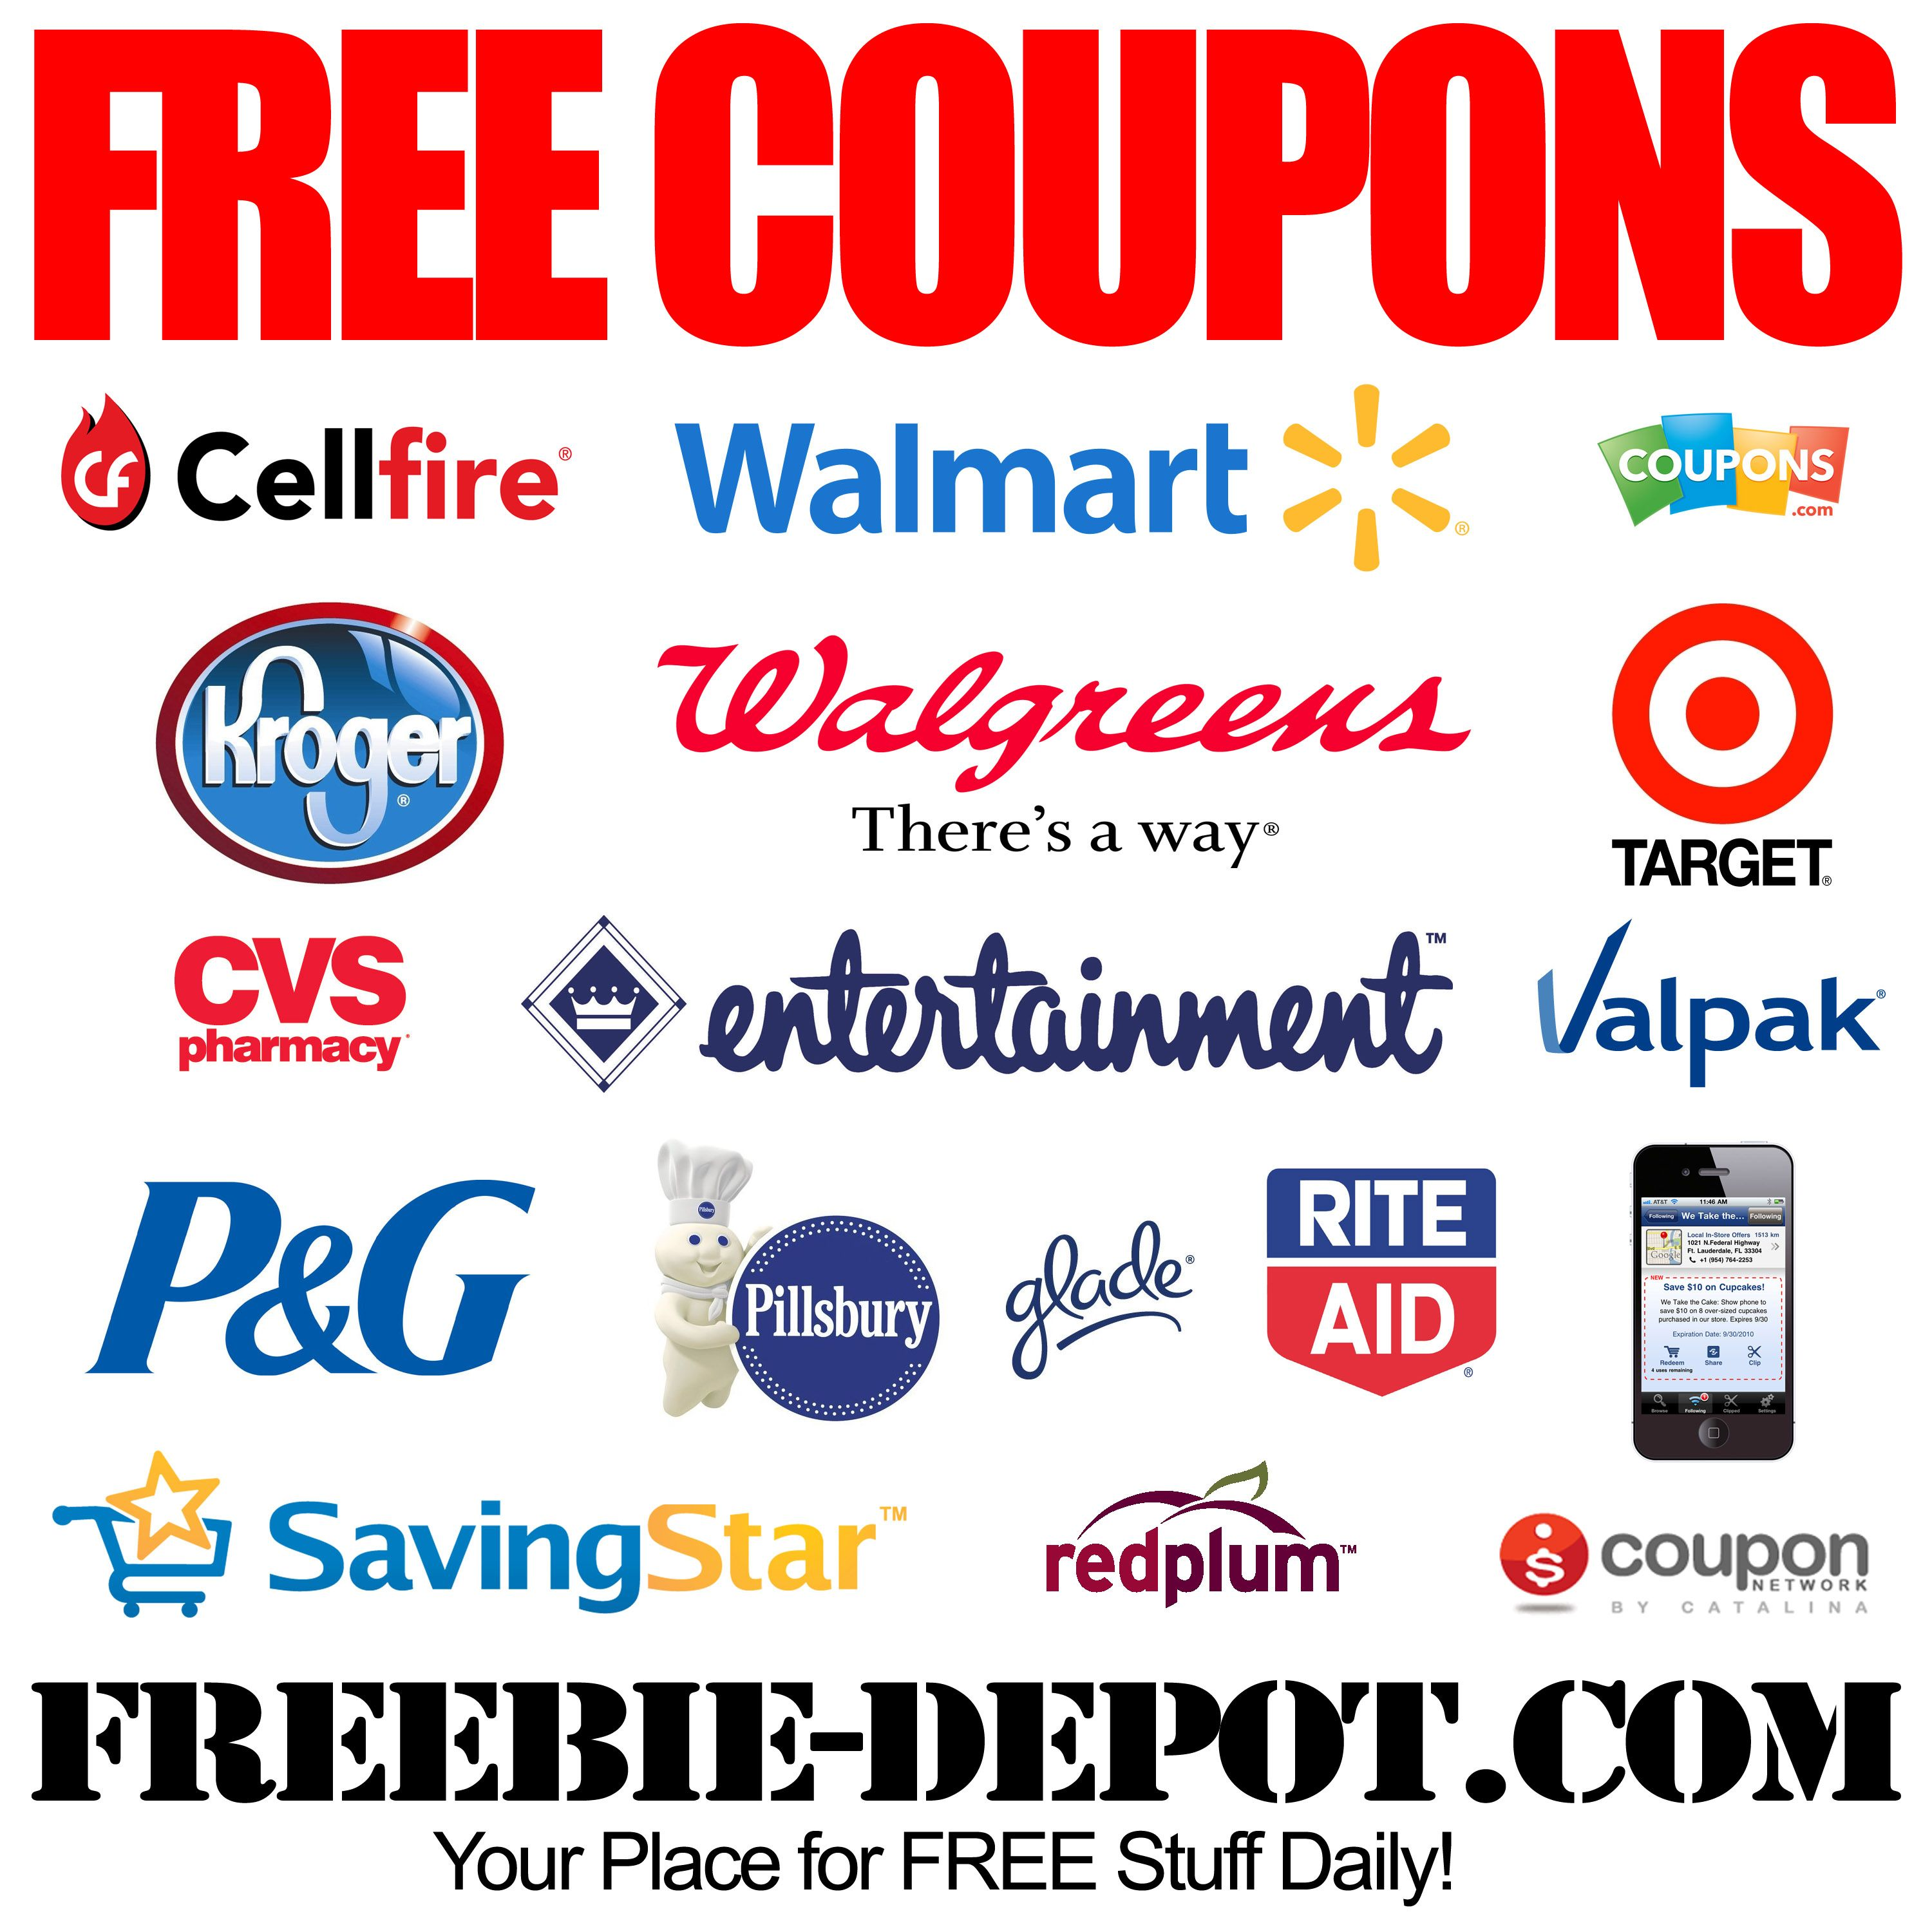 FREE Coupons FREE Printable Coupons FREE Grocery